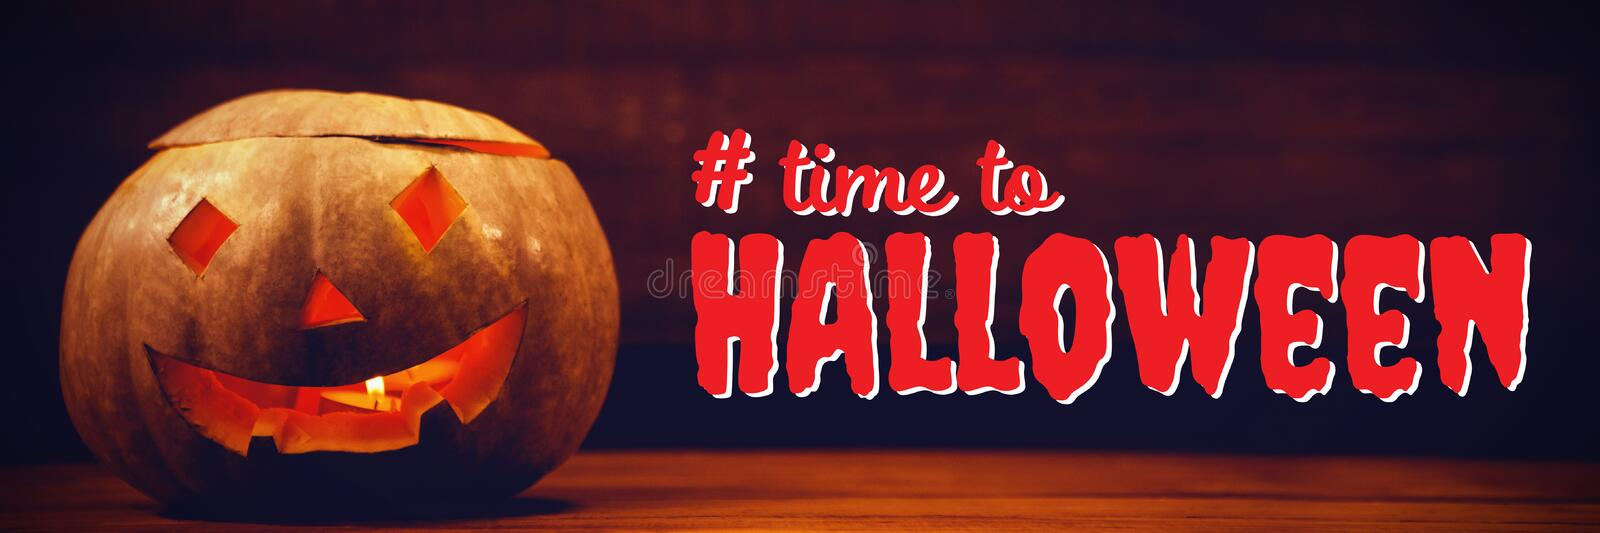 Composite image of digital composite image of time to halloween text. Digital composite image of time to Halloween text against illuminated jack o lantern on stock images